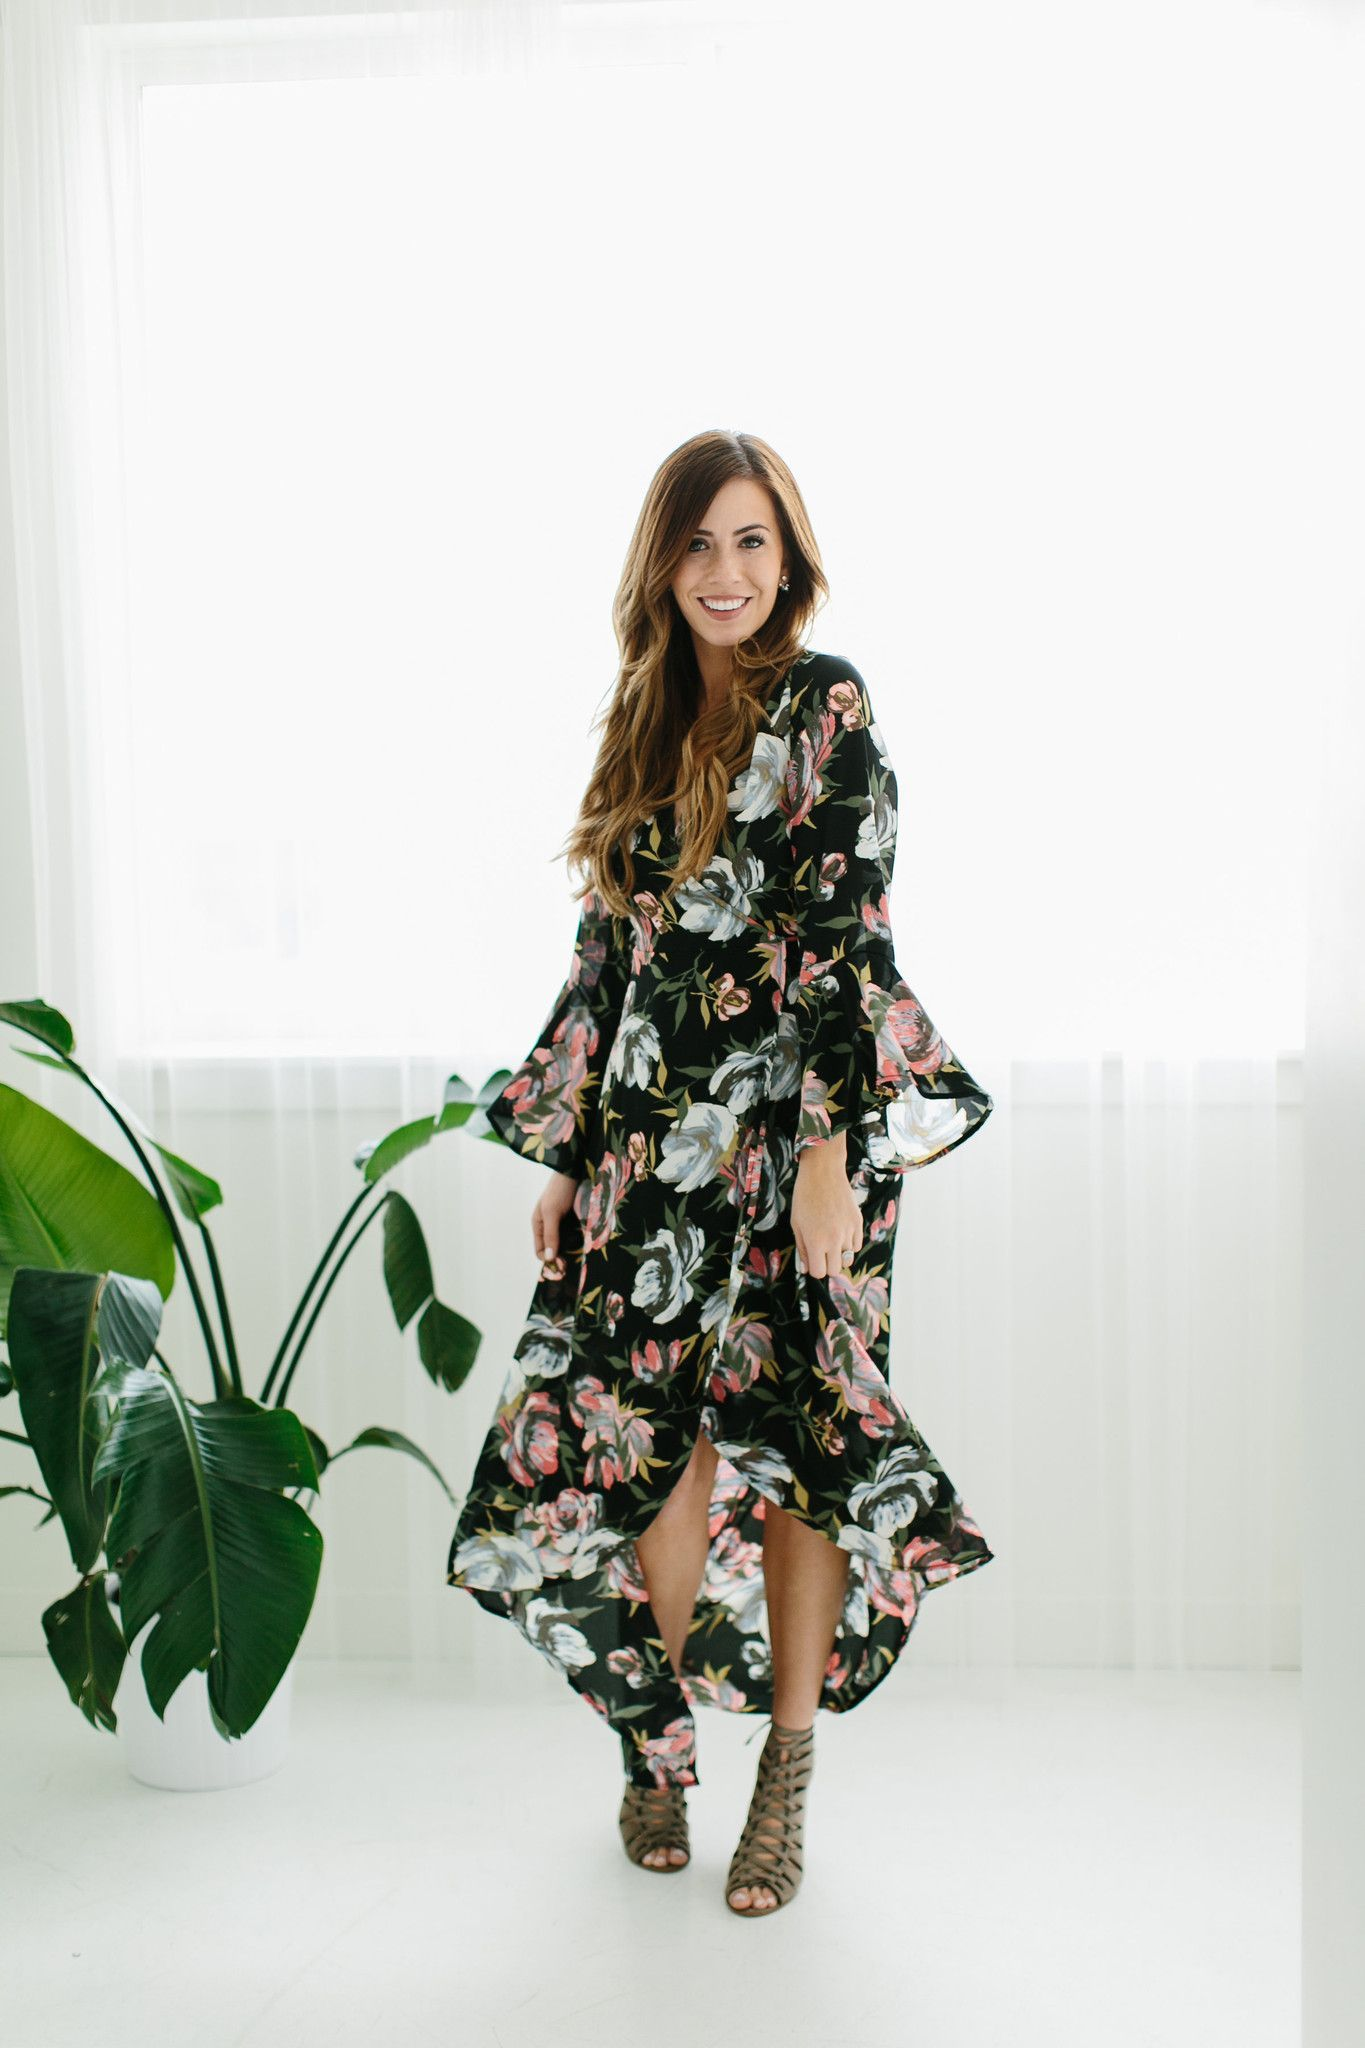 Black Floral High Low Dress True Wrap Dress Waist Tie Long Sleeves With Bell Nursing Friend Floral High Low Dress Contemporary Outfits Bohemian Clothes [ 2048 x 1365 Pixel ]